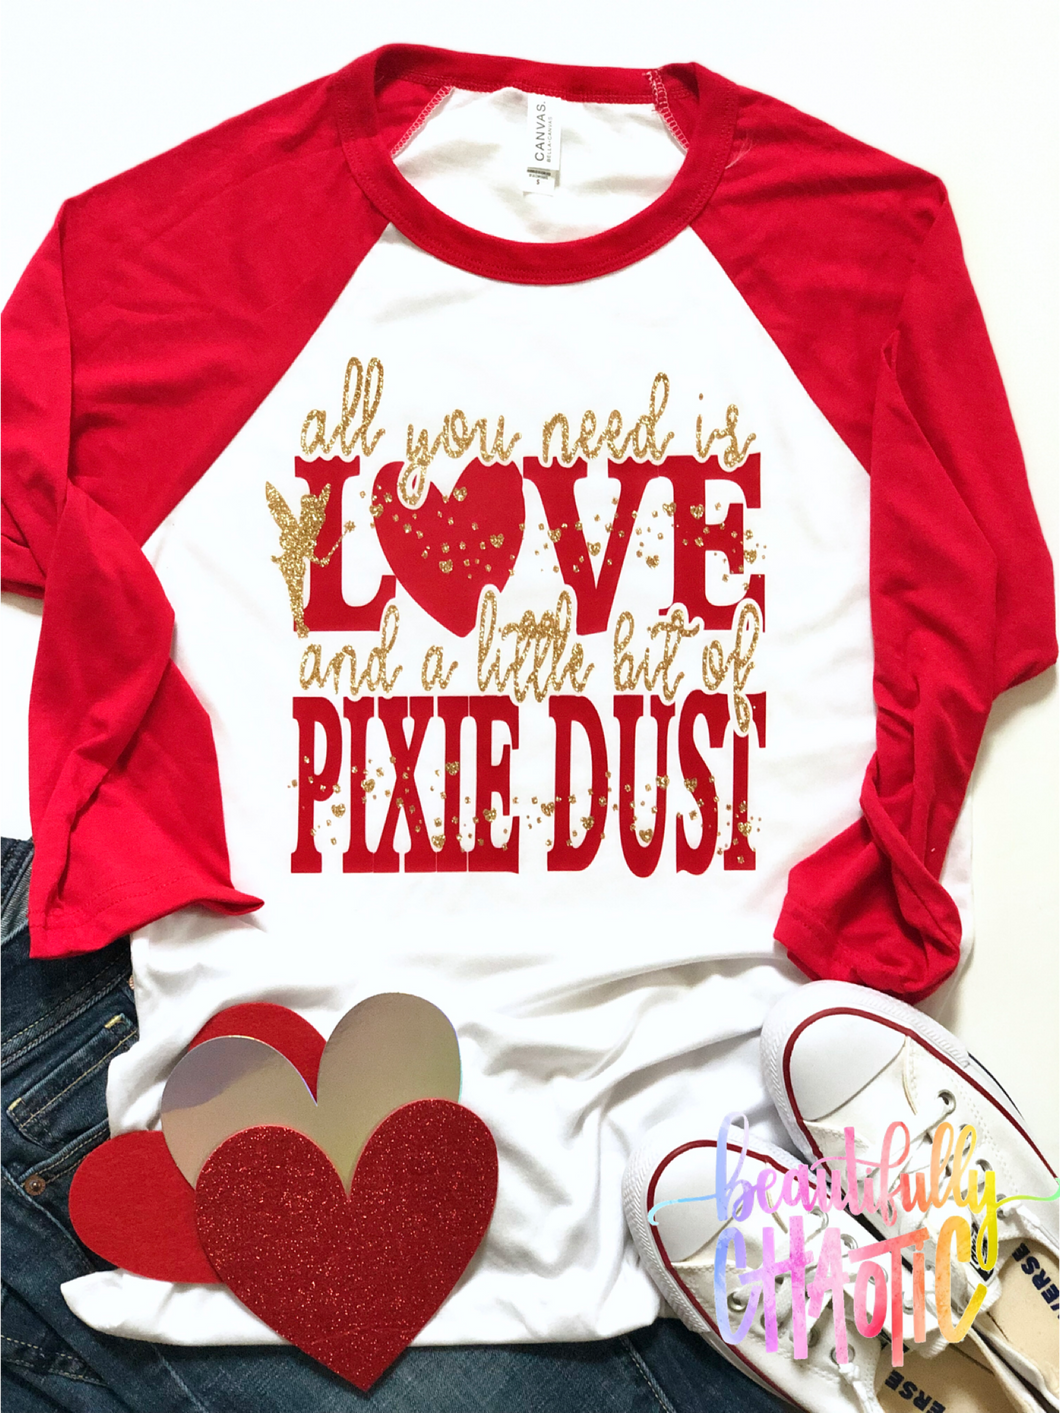 All you need is love and a little bit of pixie dust